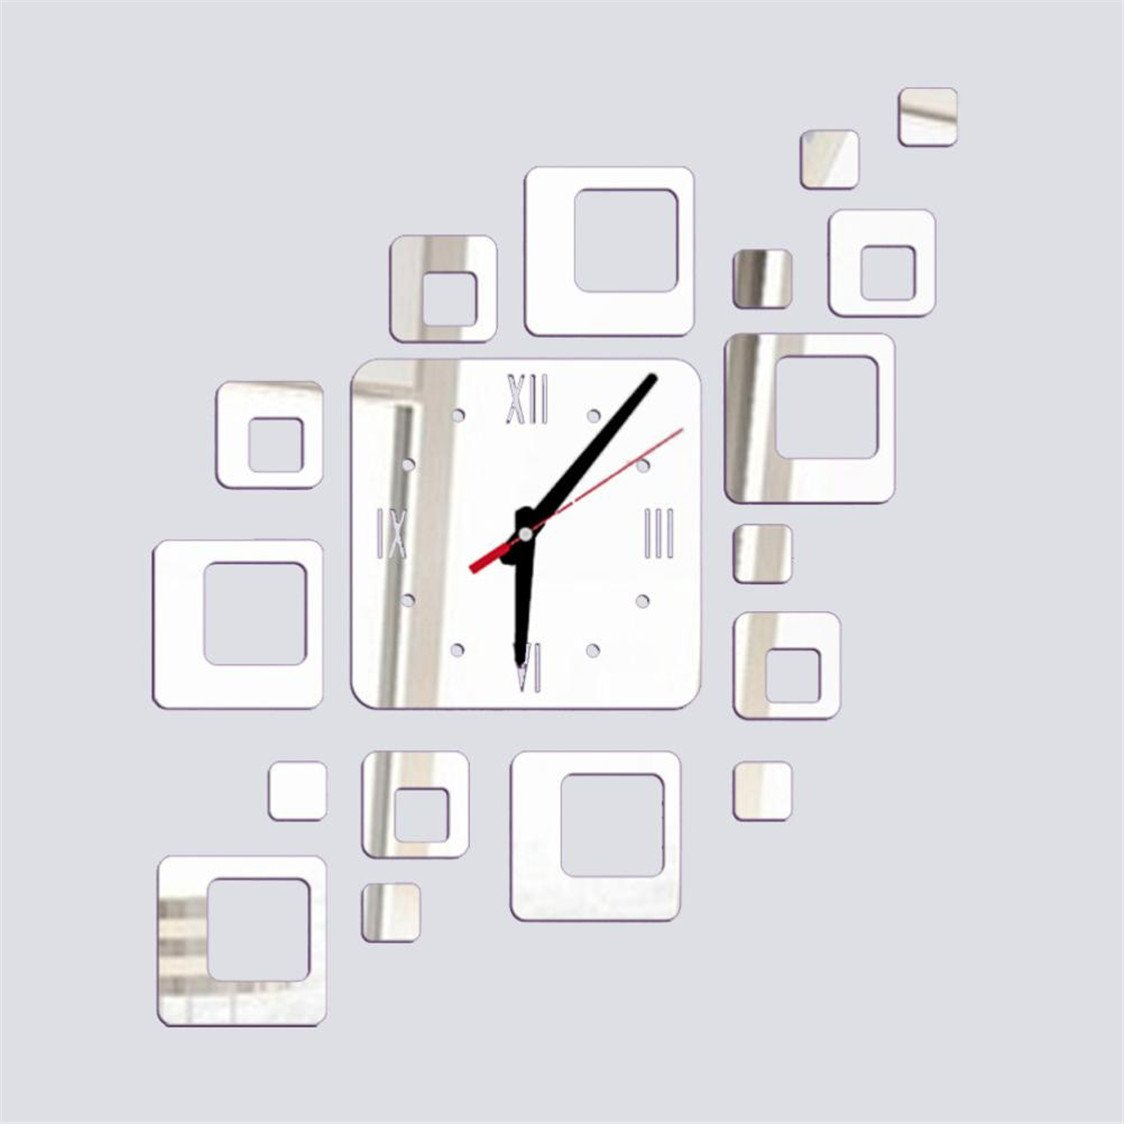 Amazon.com: TIFENNY Acrylic Mirror DIY Wall Sticker Clock, Living Room Bedroom Modern Watch Decor Wall-mounted Vinyl Wall Sticker (Silver): Home & Kitchen